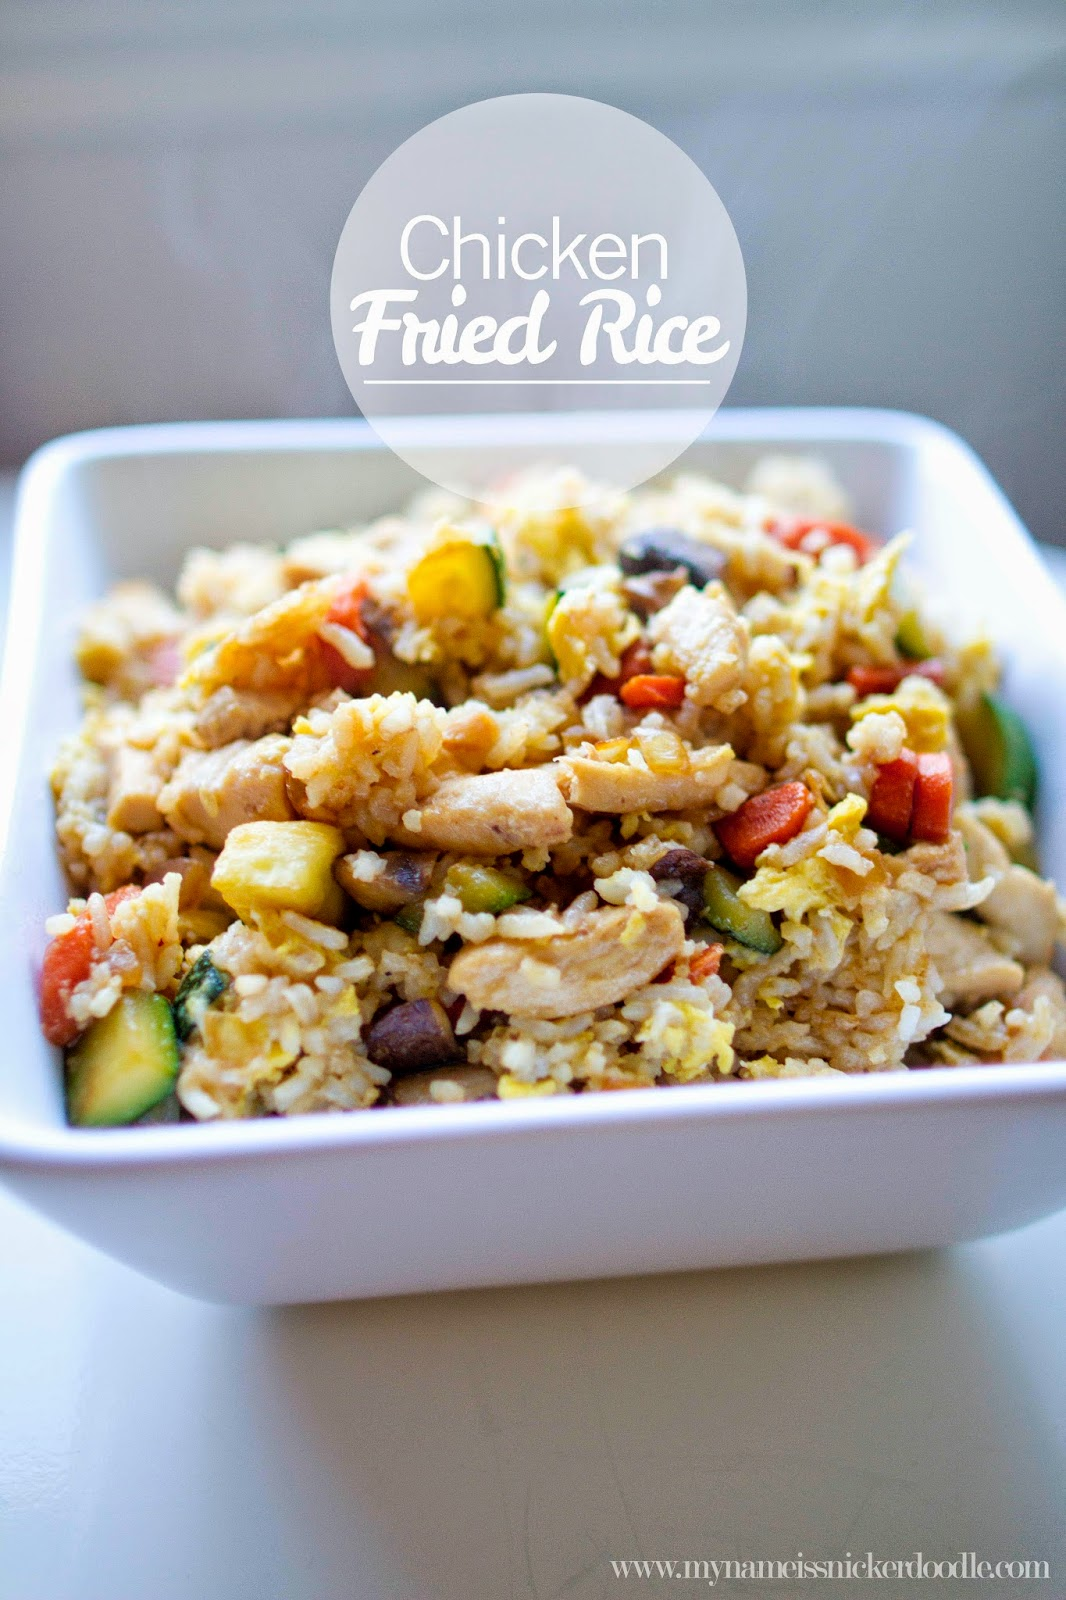 Chicken fried rice my name is snickerdoodle super easy and delicious chicken fried rice recipe perfect for using leftover rice ccuart Gallery